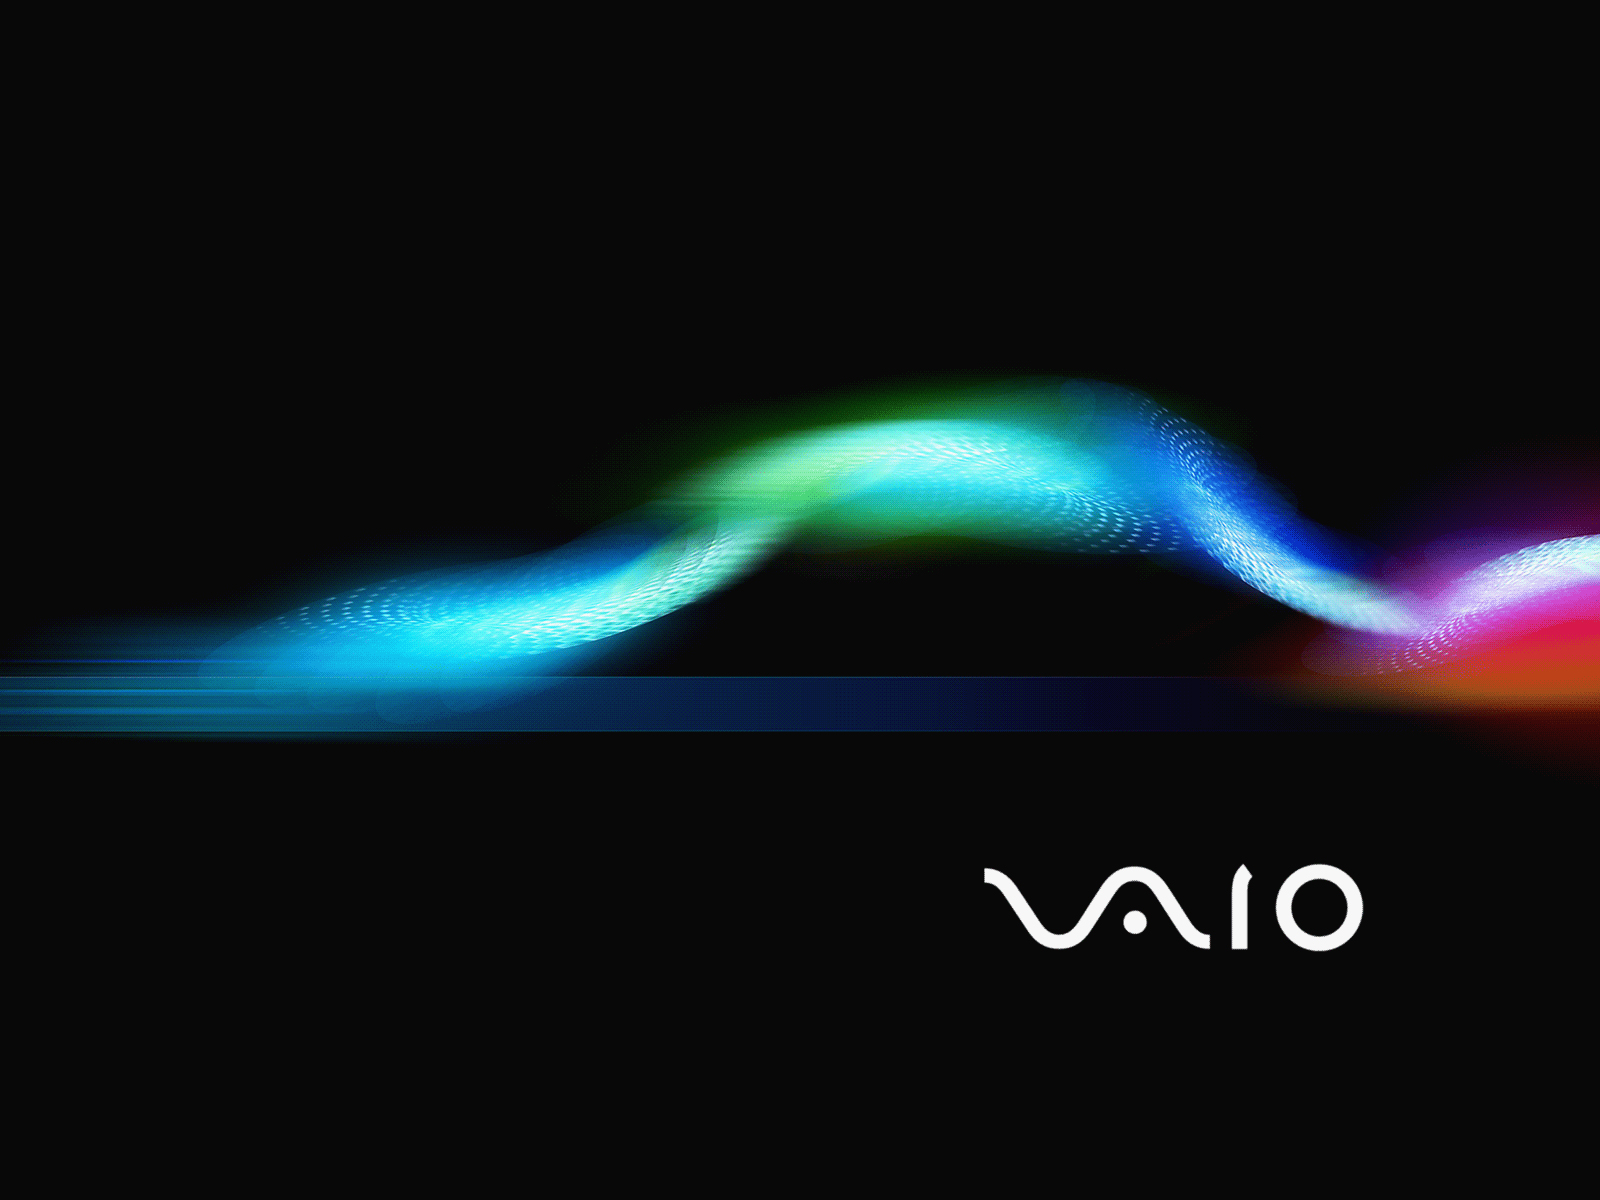 ... sony wallpapers vaio backgrounds 1 vaio backgrounds 2 vaio backgrounds 3 ...